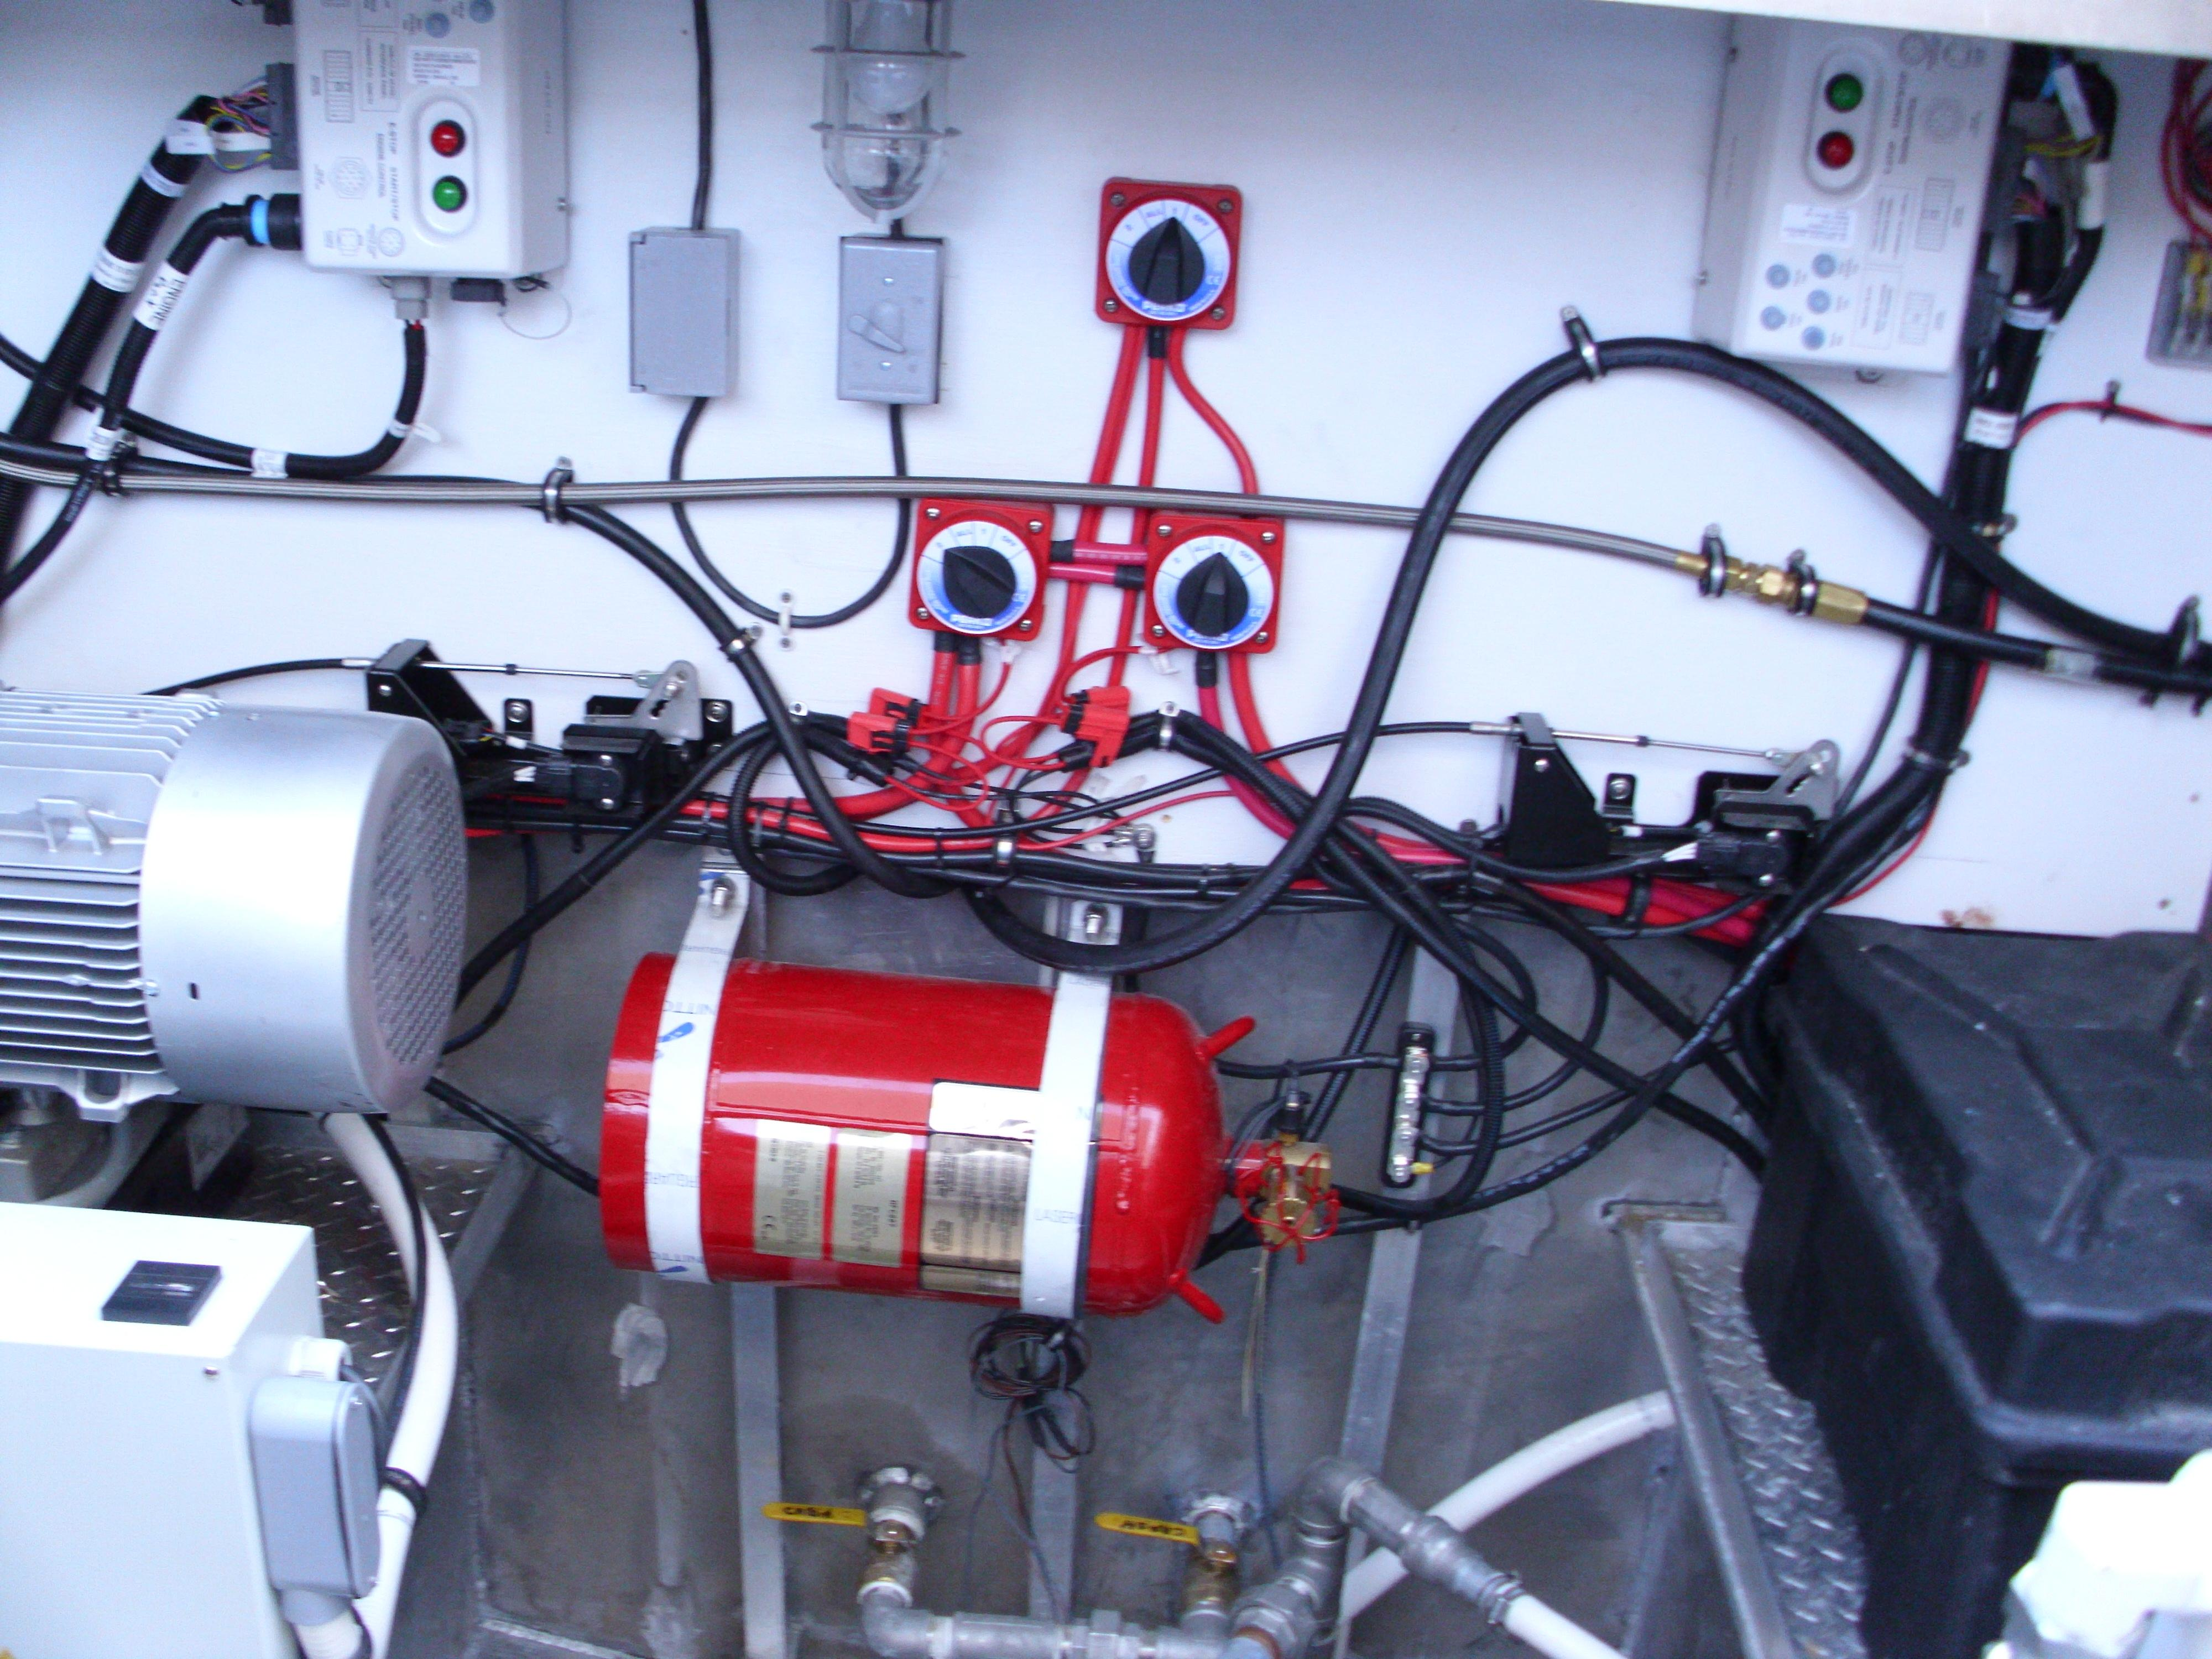 DC switches and Fire Suppression